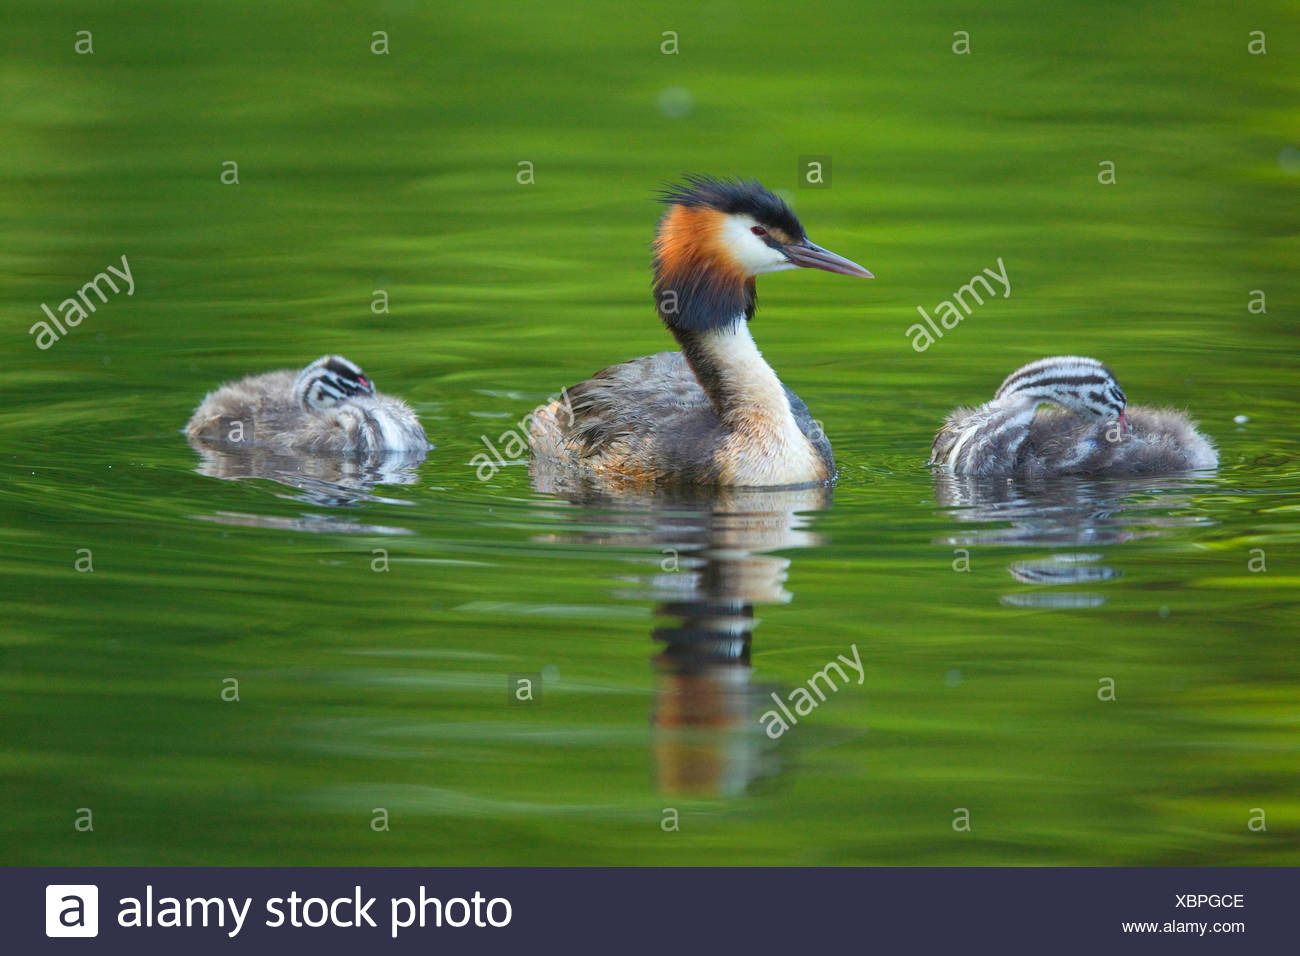 great crested grebe (Podiceps cristatus), adult bird with two young animals on the water, Germany - Stock Image